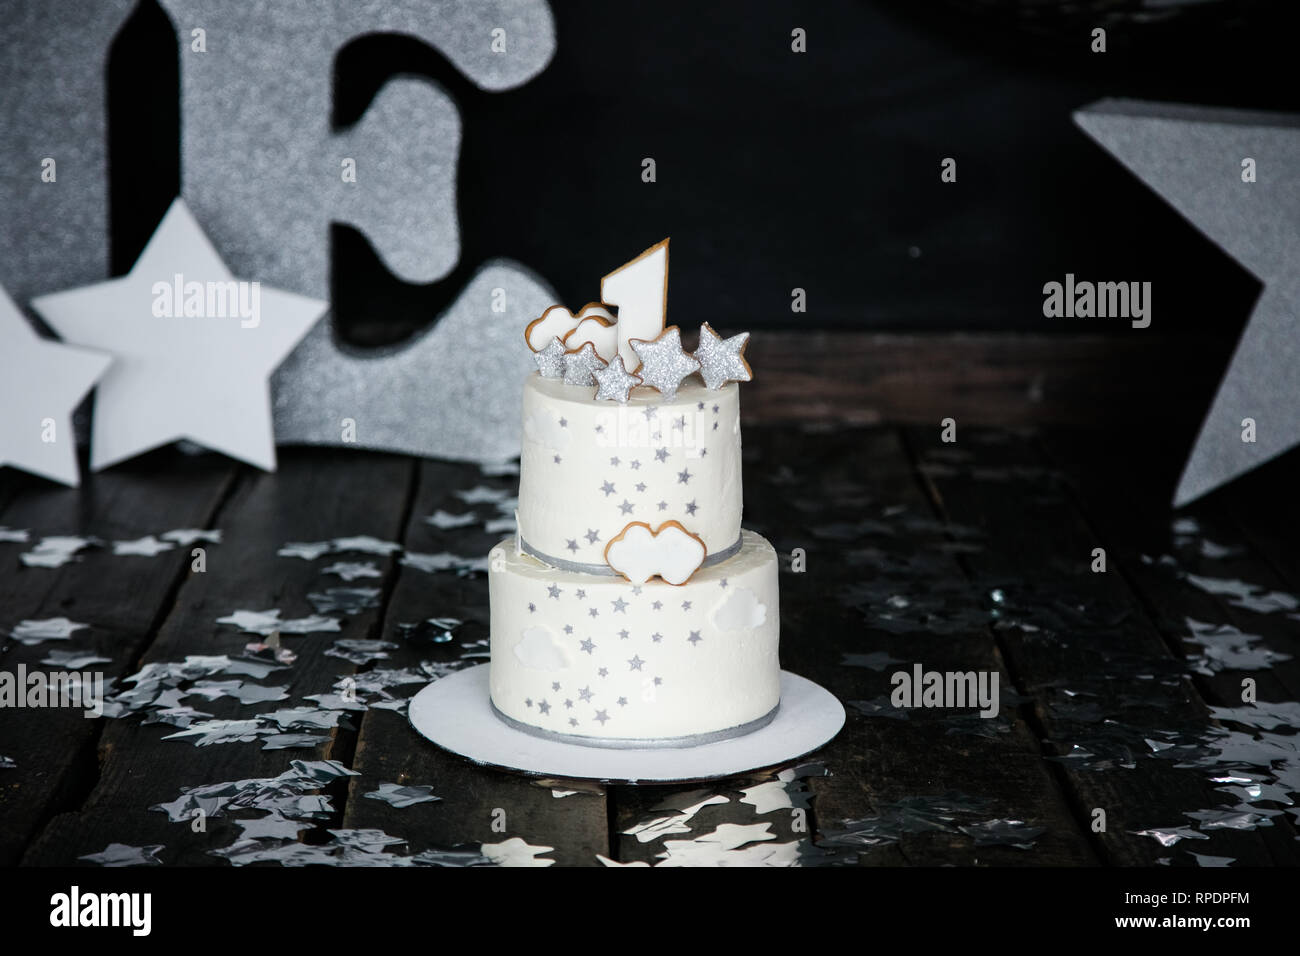 Excellent First Birthday White Cake With Stars And Candle For Little Baby Funny Birthday Cards Online Inifofree Goldxyz